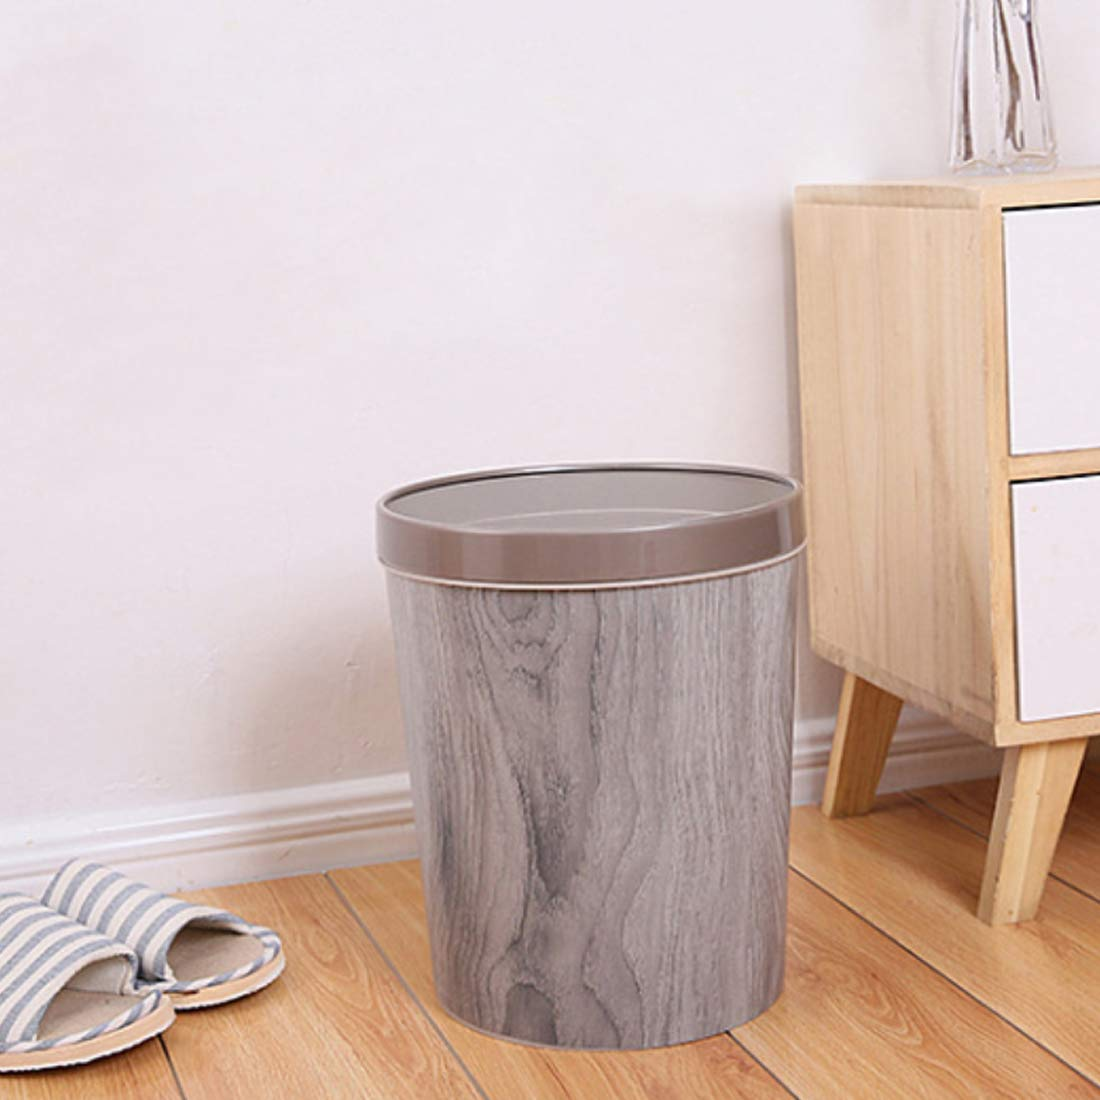 WOLFBUSH 12L Trash Can Durable Garbage Can Waste Basket with Wood-Grain European Style Wastebin for Bathroom, Bedroom, Office (Silver Grey) by WOLFBUSH (Image #3)